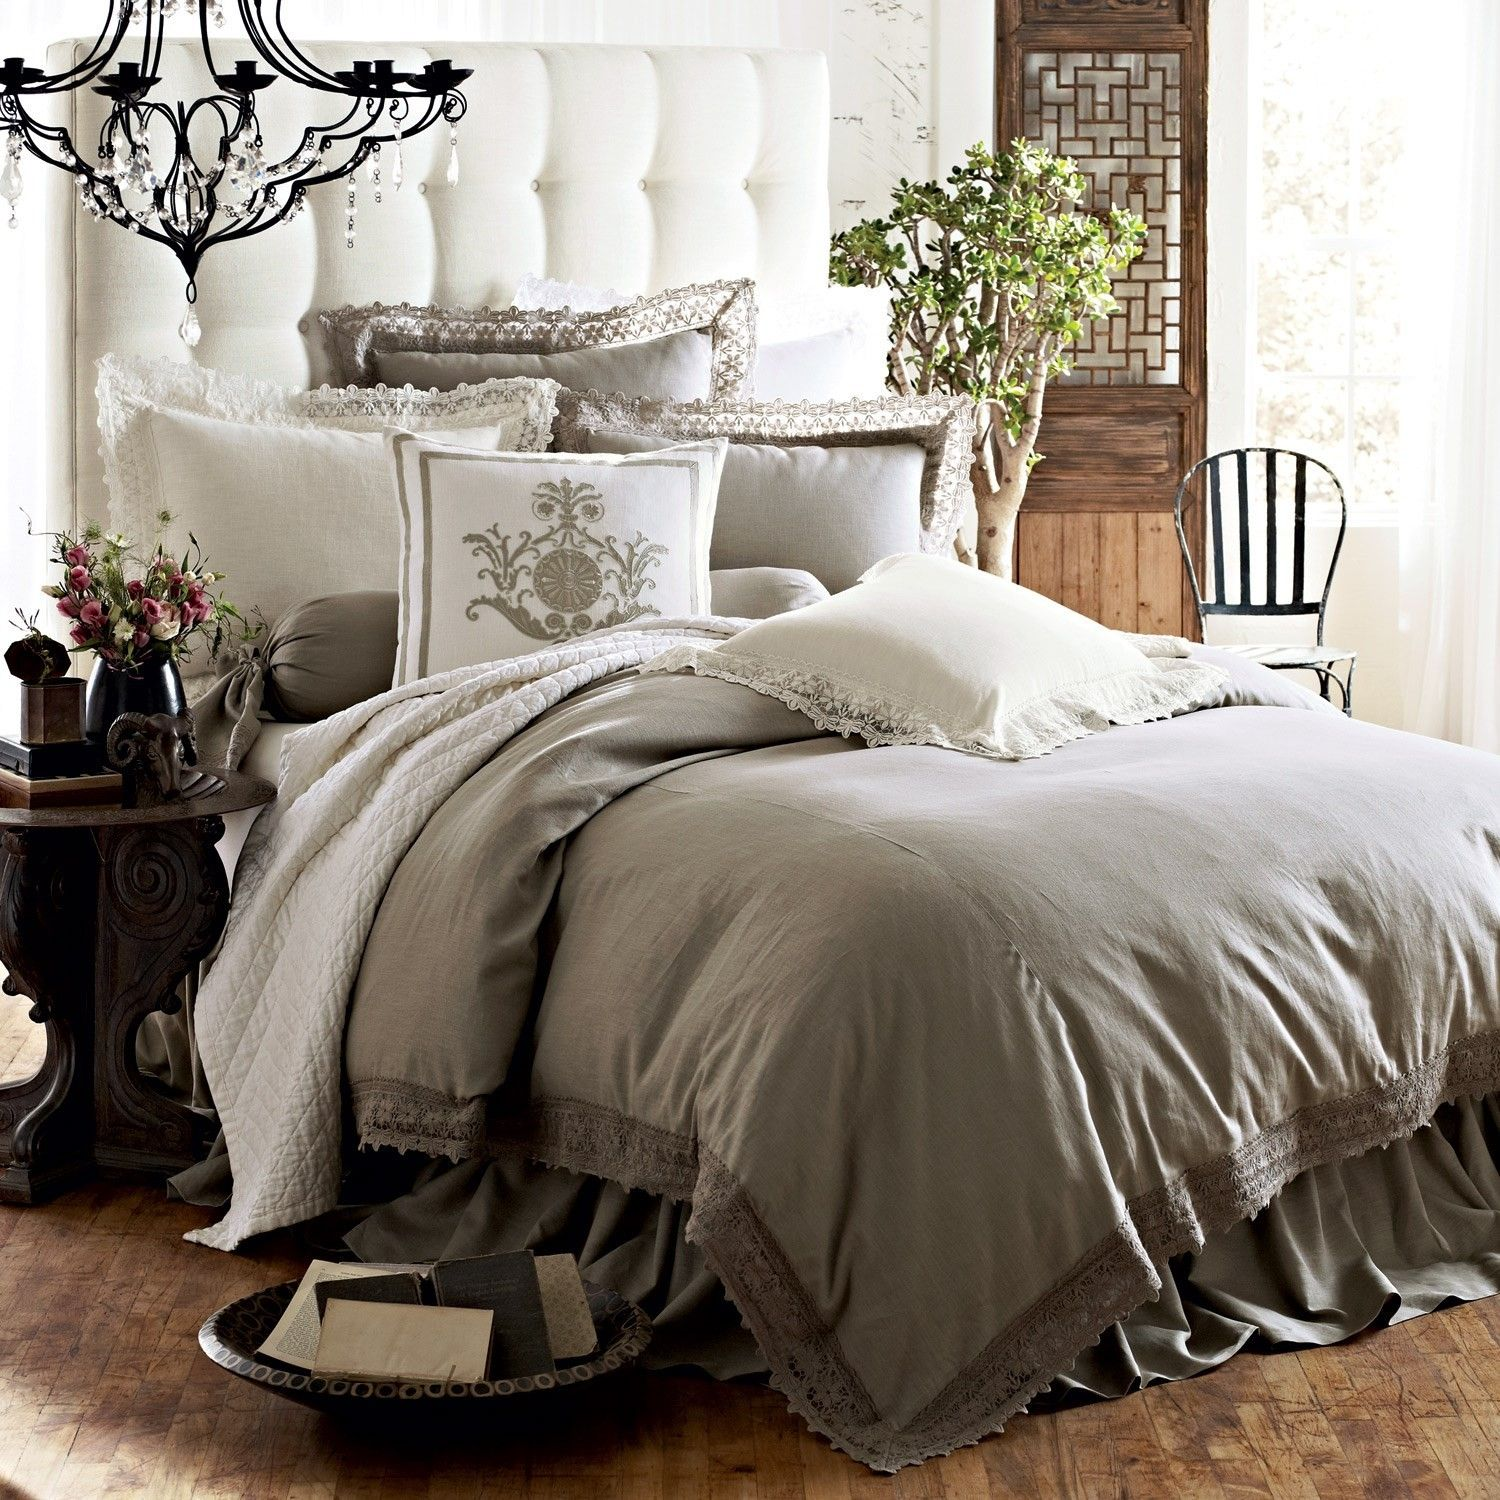 The Theresa Bedding Set Features A Lovely Flax Linen With Lace Accented Fabric This